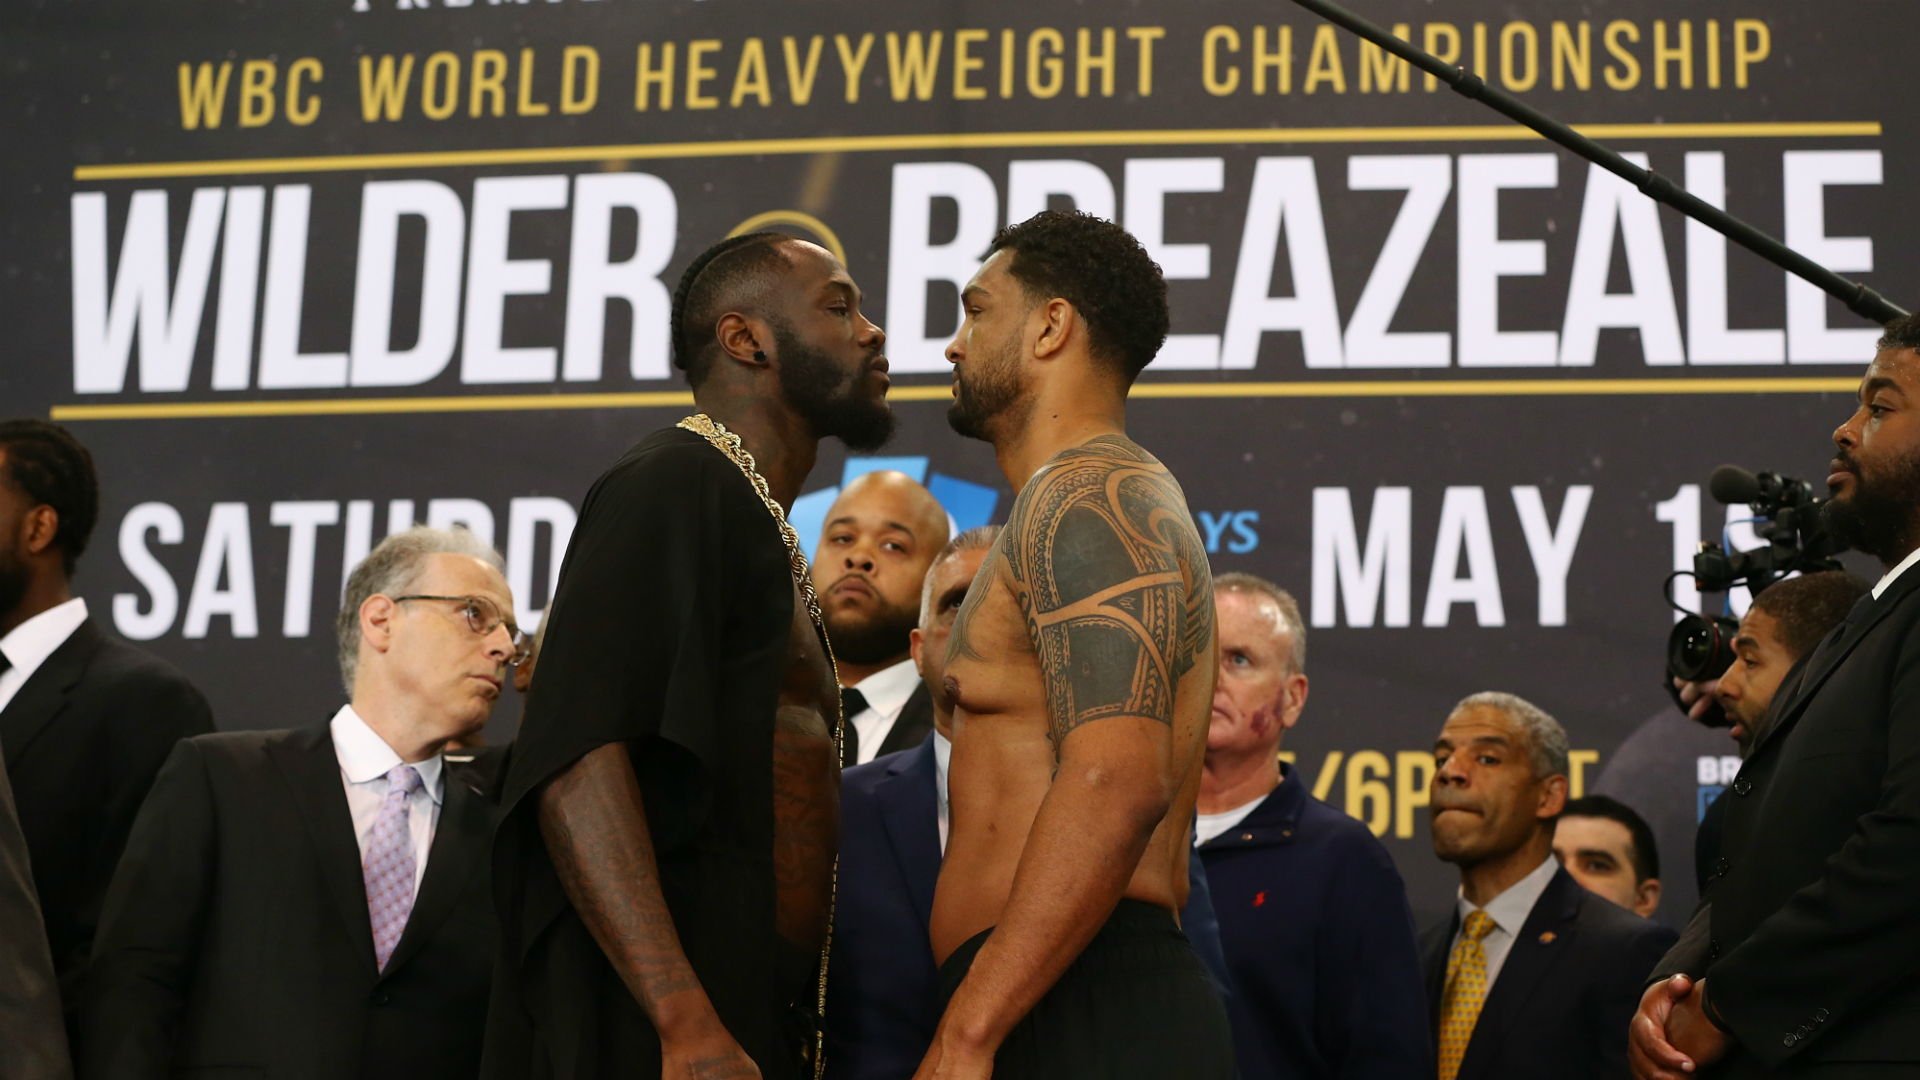 Wilder ready for 'judgement day' after war of words with Breazeale